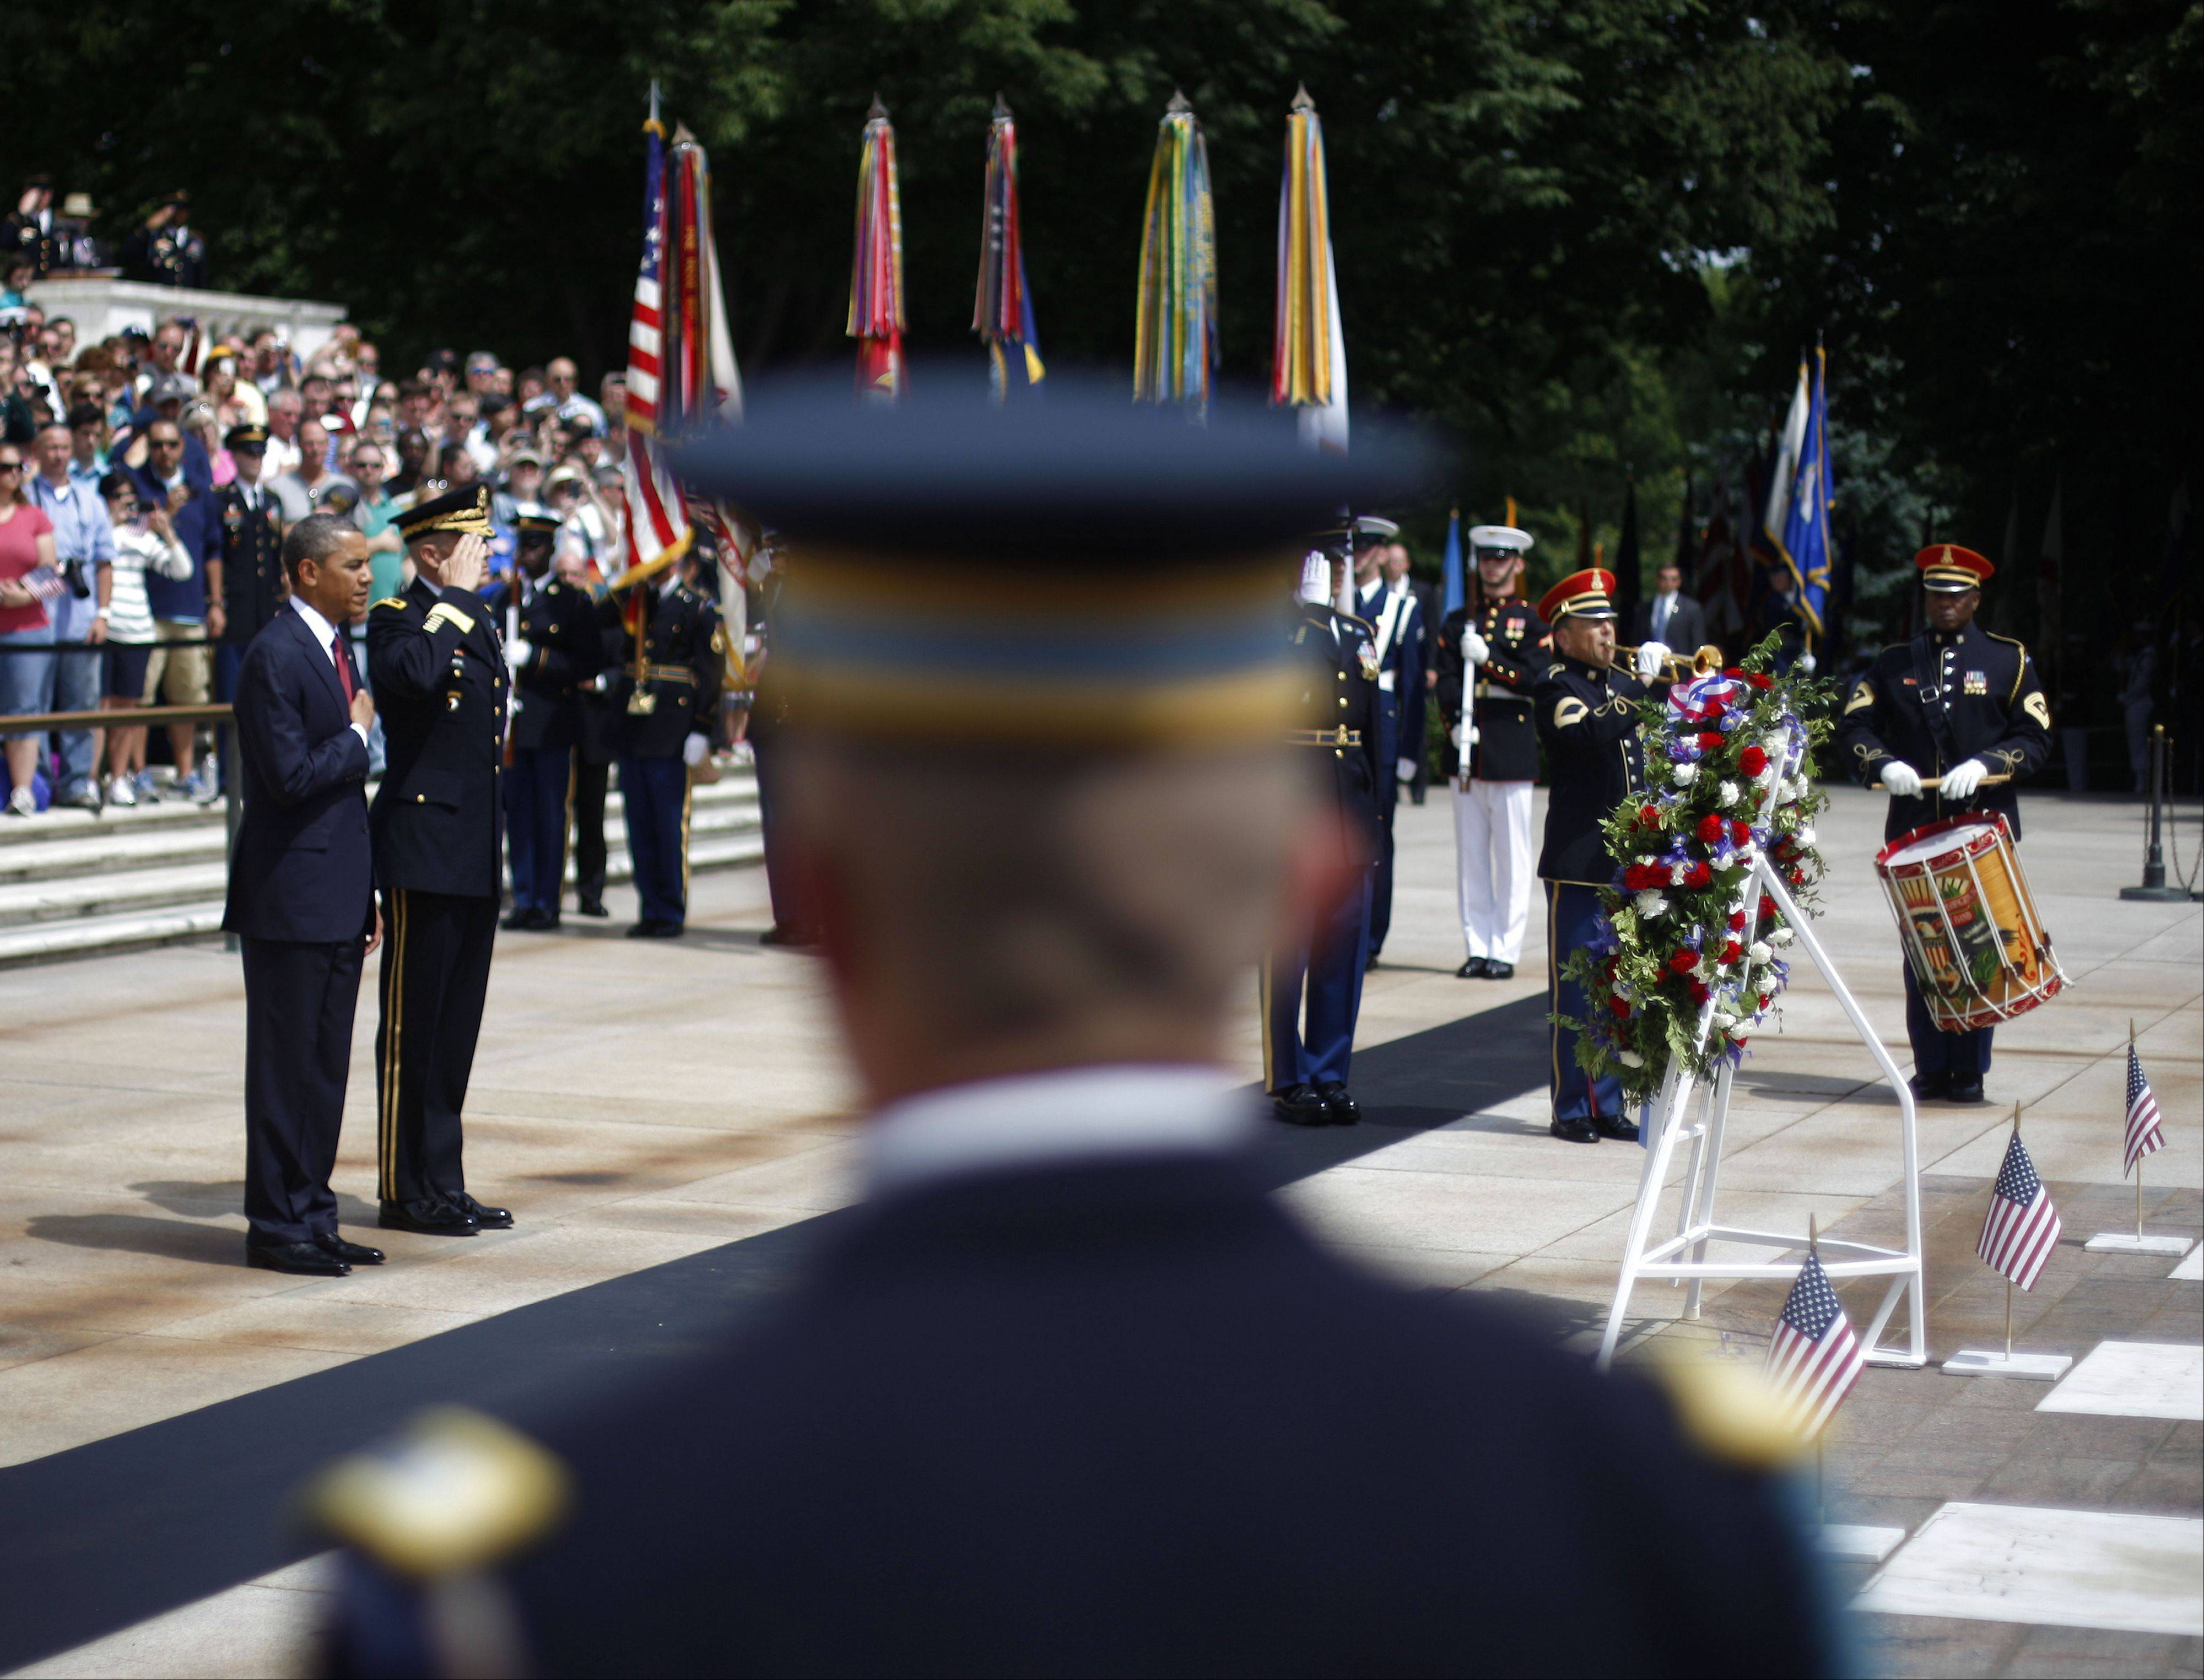 President Barack Obama, far left, participates in a wreath-laying ceremony at the Tomb of the Unknowns with Maj. Gen. Michael S. Linnington, Commander of the U.S. Army Military District of Washington, at Arlington National Cemetery on Memorial Day, May 27, 2013, in Arlington, Va.